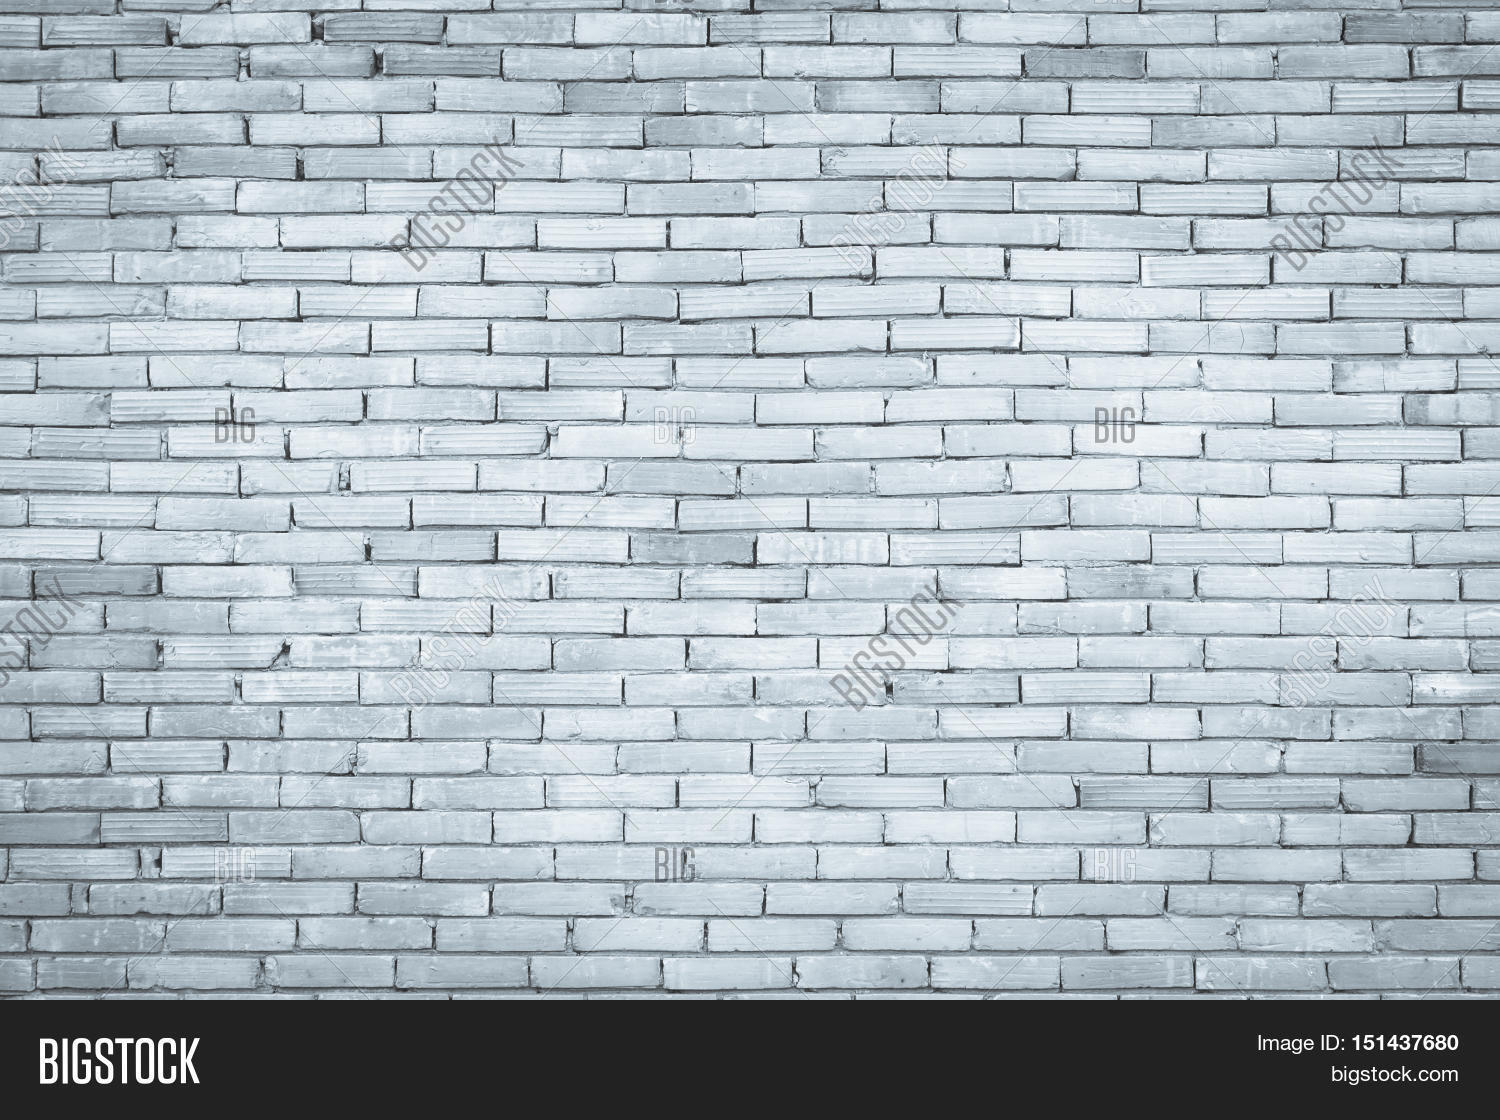 Tile Wall High Image & Photo (Free Trial) | Bigstock